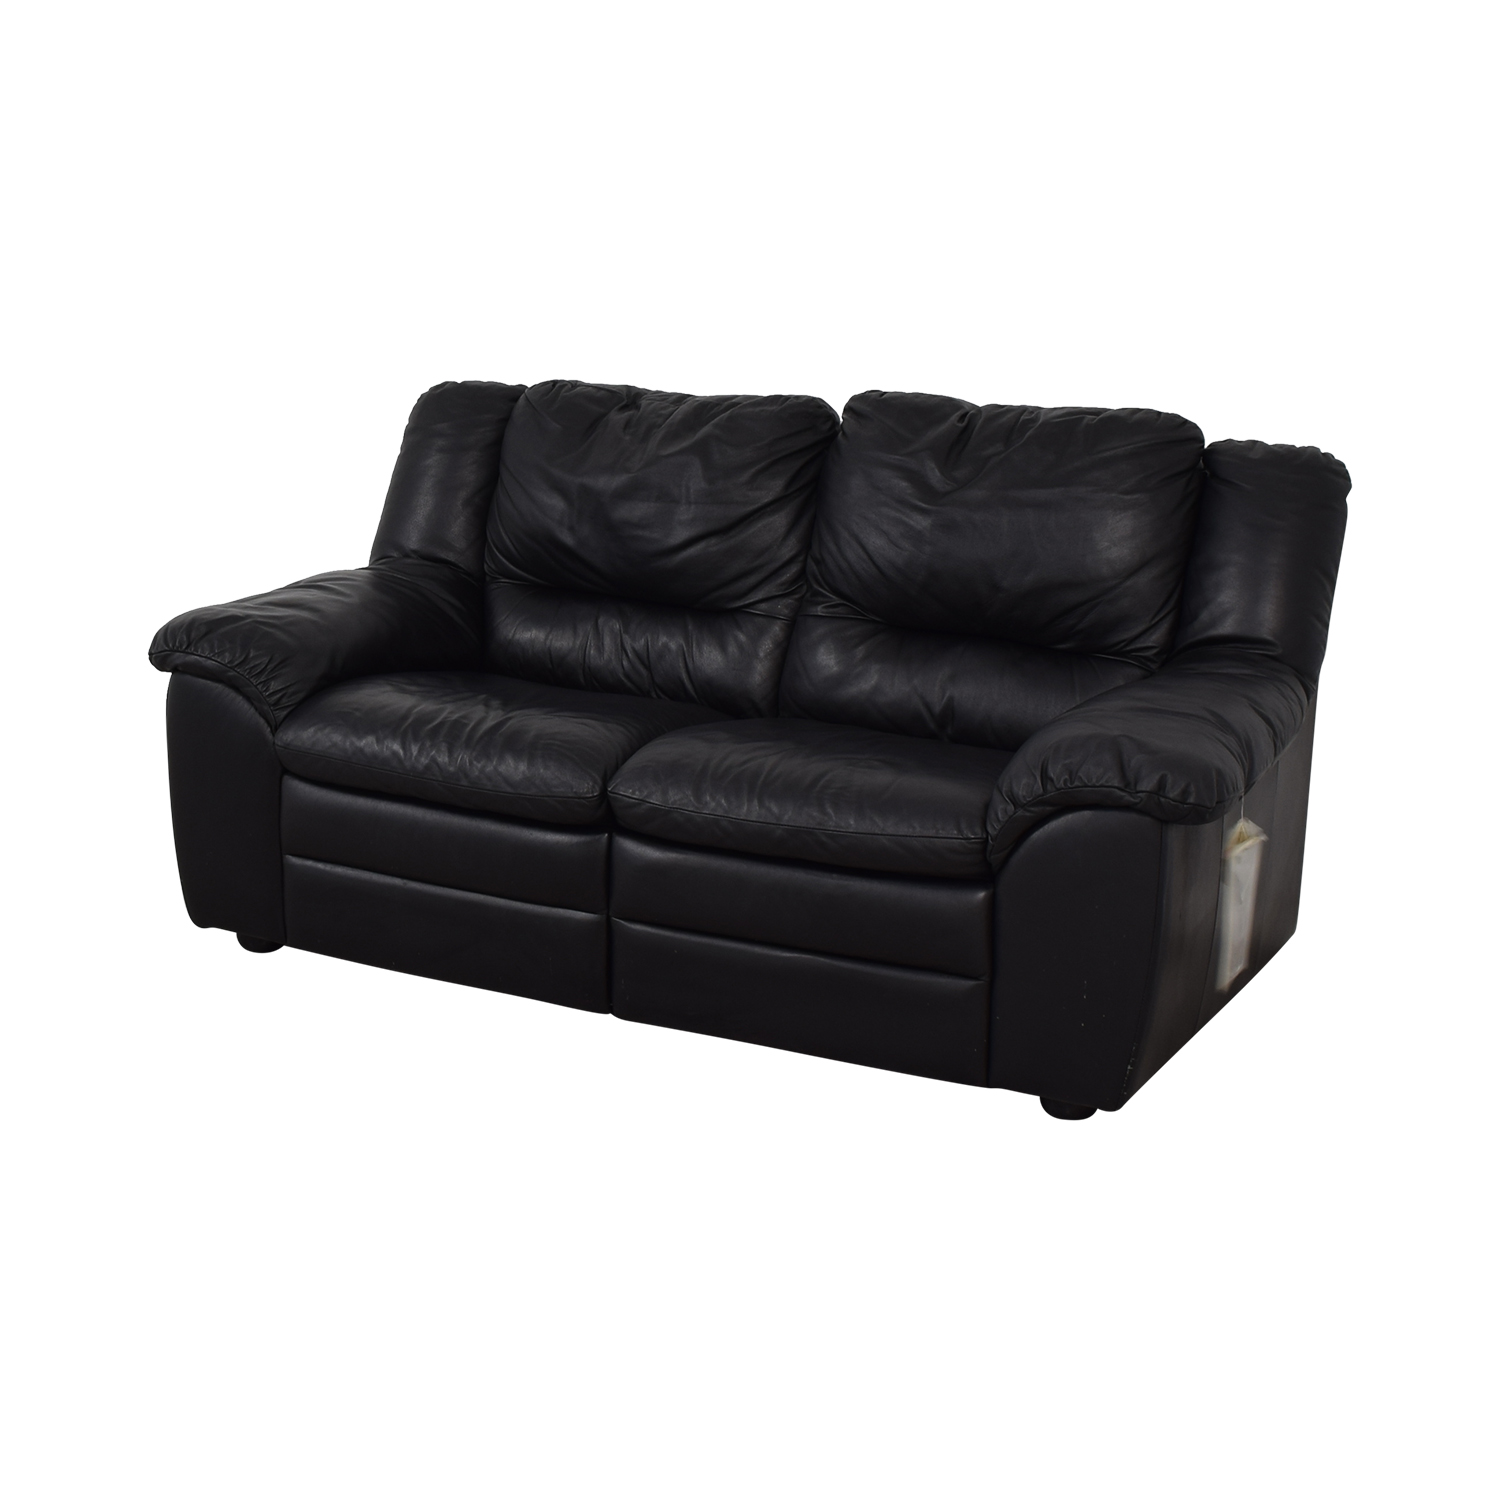 shop Natuzzi Natuzzi Black Leather Two-Cushion Recliner Loveseat online